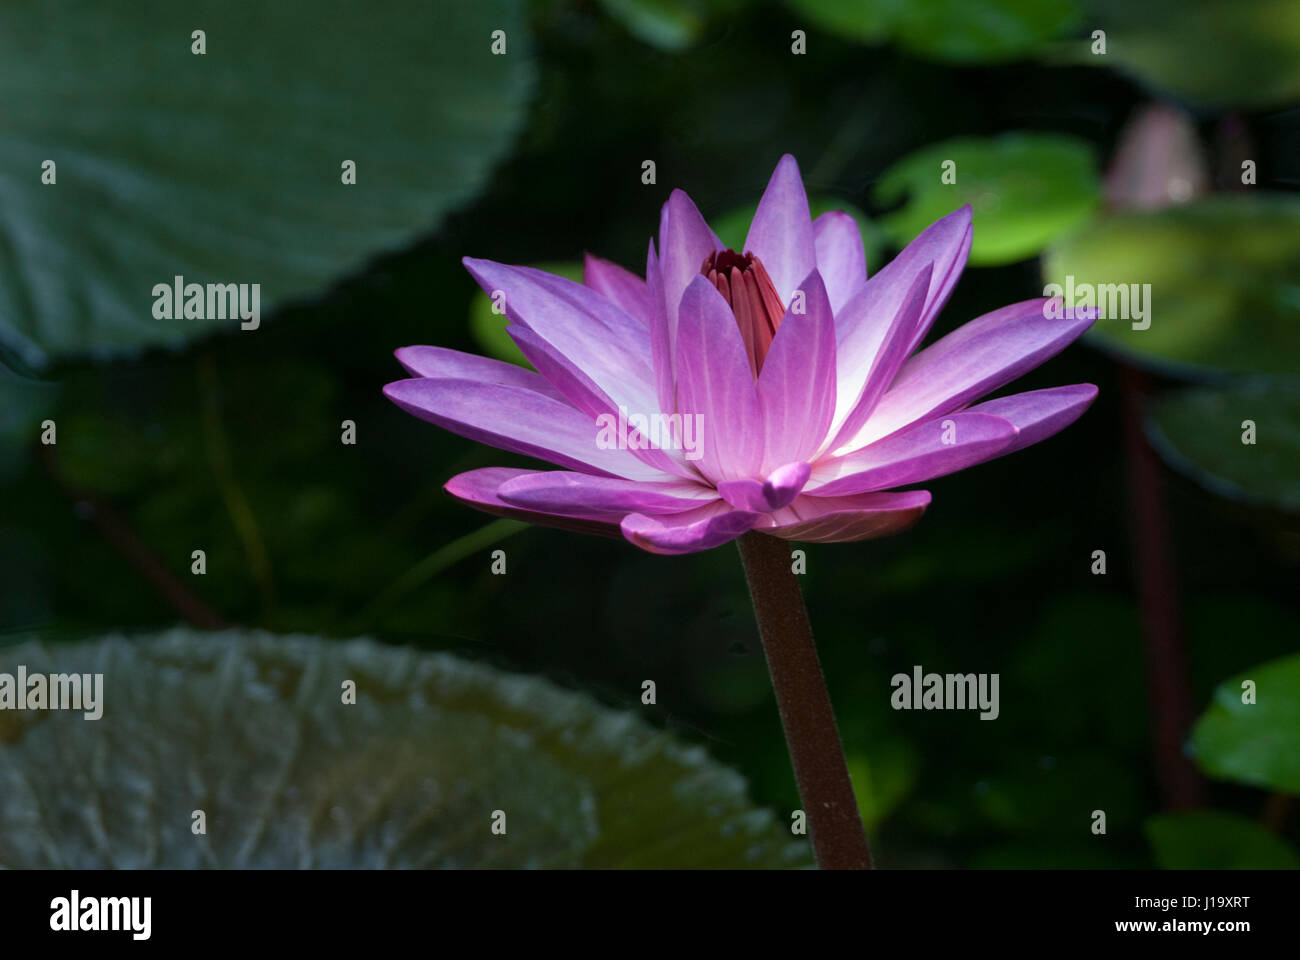 Brazilian water lily stock photos brazilian water lily stock the deep pink flower of a tropical brazilian water lily between the leaves of the plant izmirmasajfo